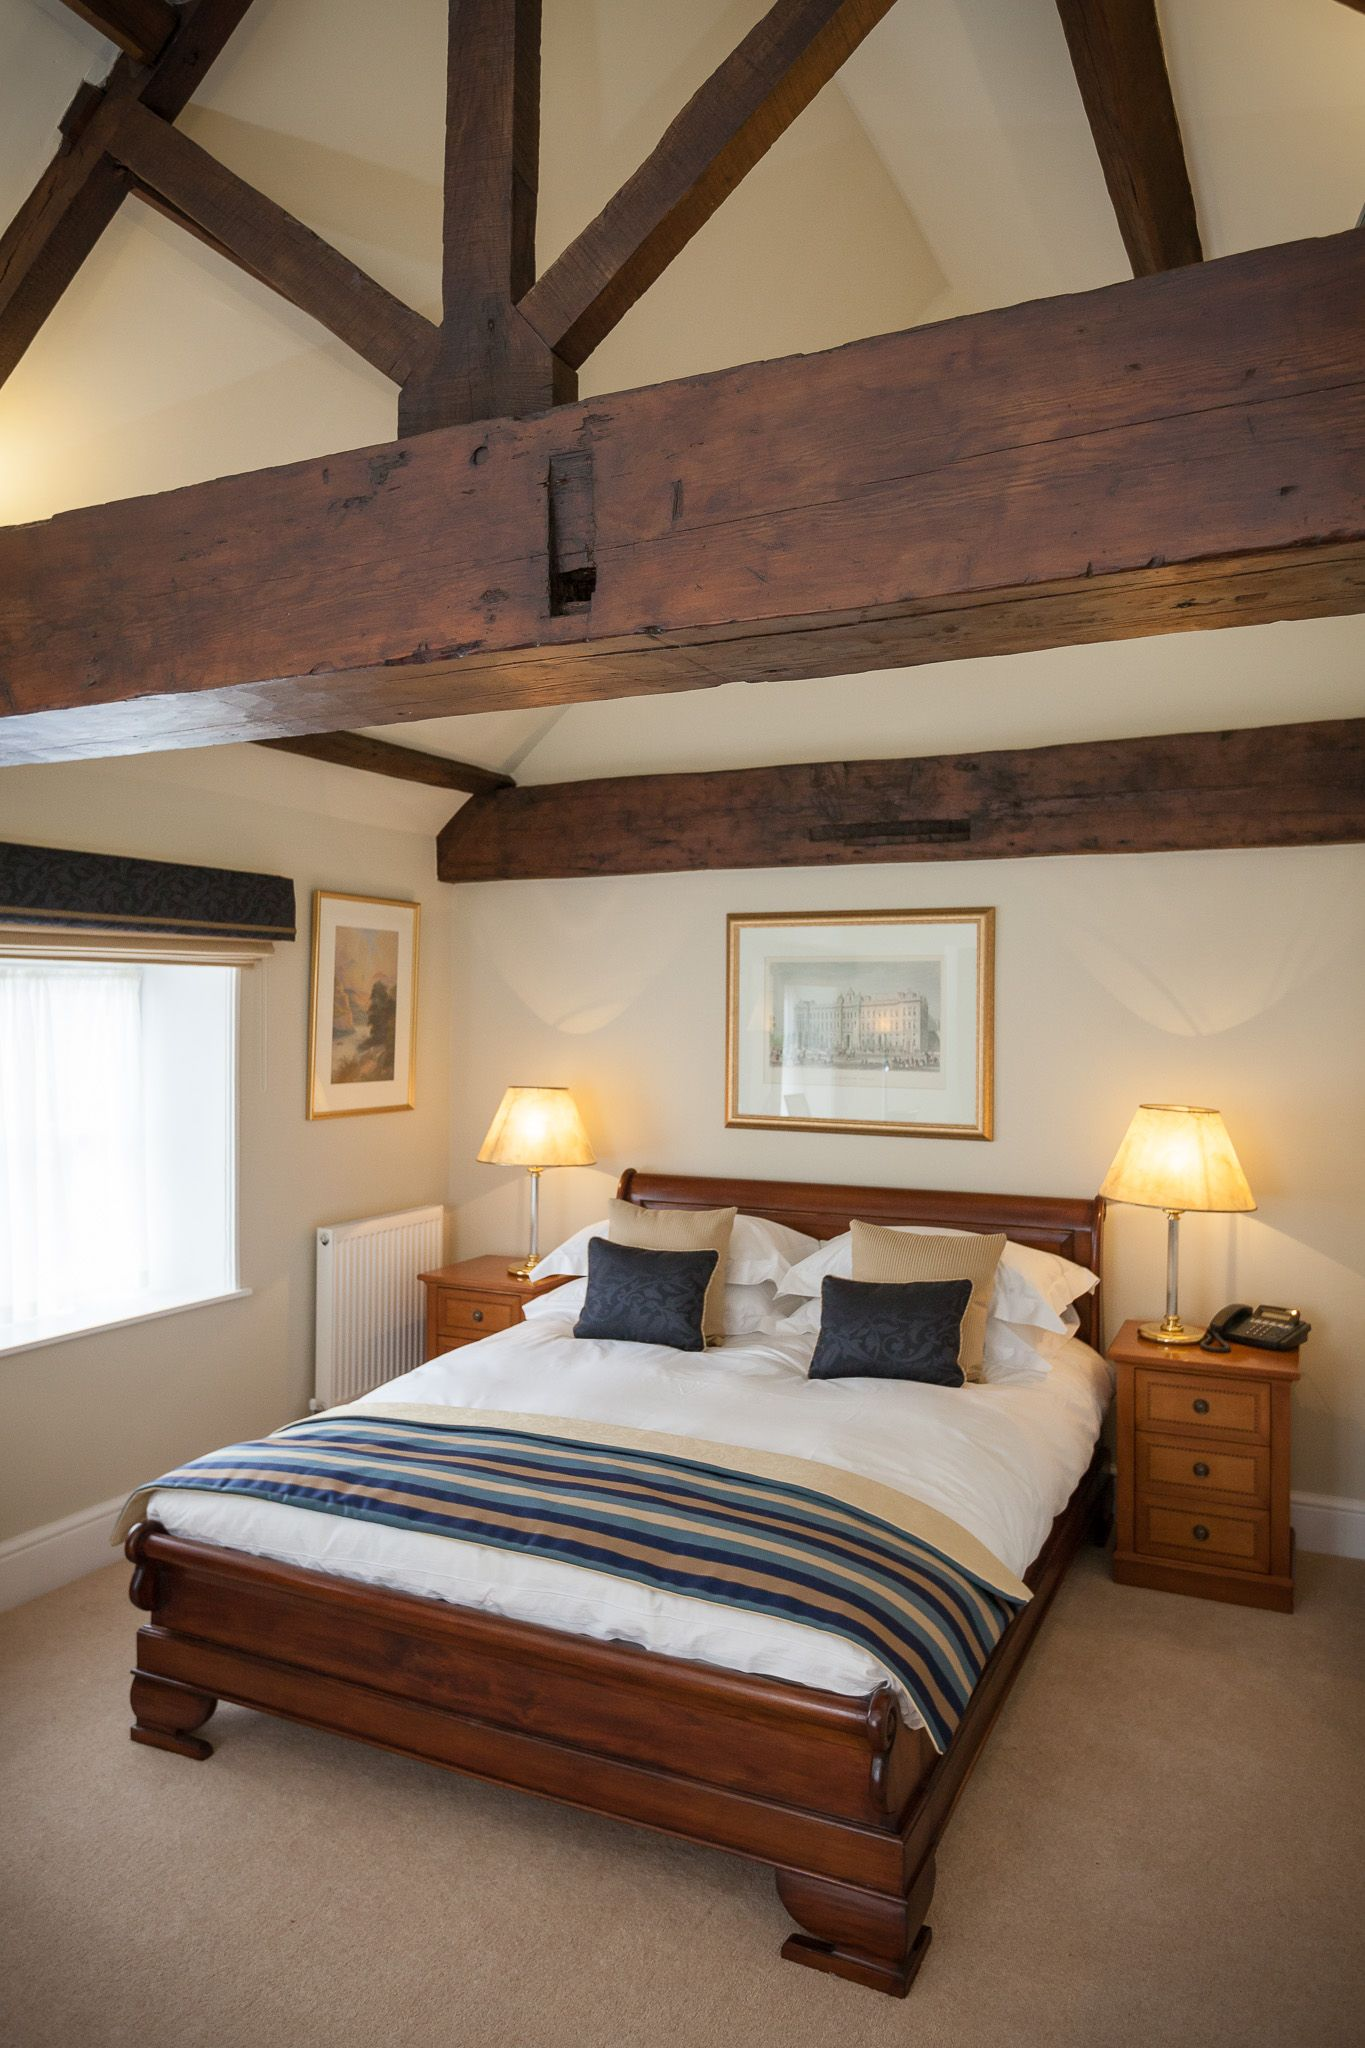 Luxury Country House Hotel Yorkshire Bedroom Interior Luxury Rooms Country House Hotels Bedroom Interior